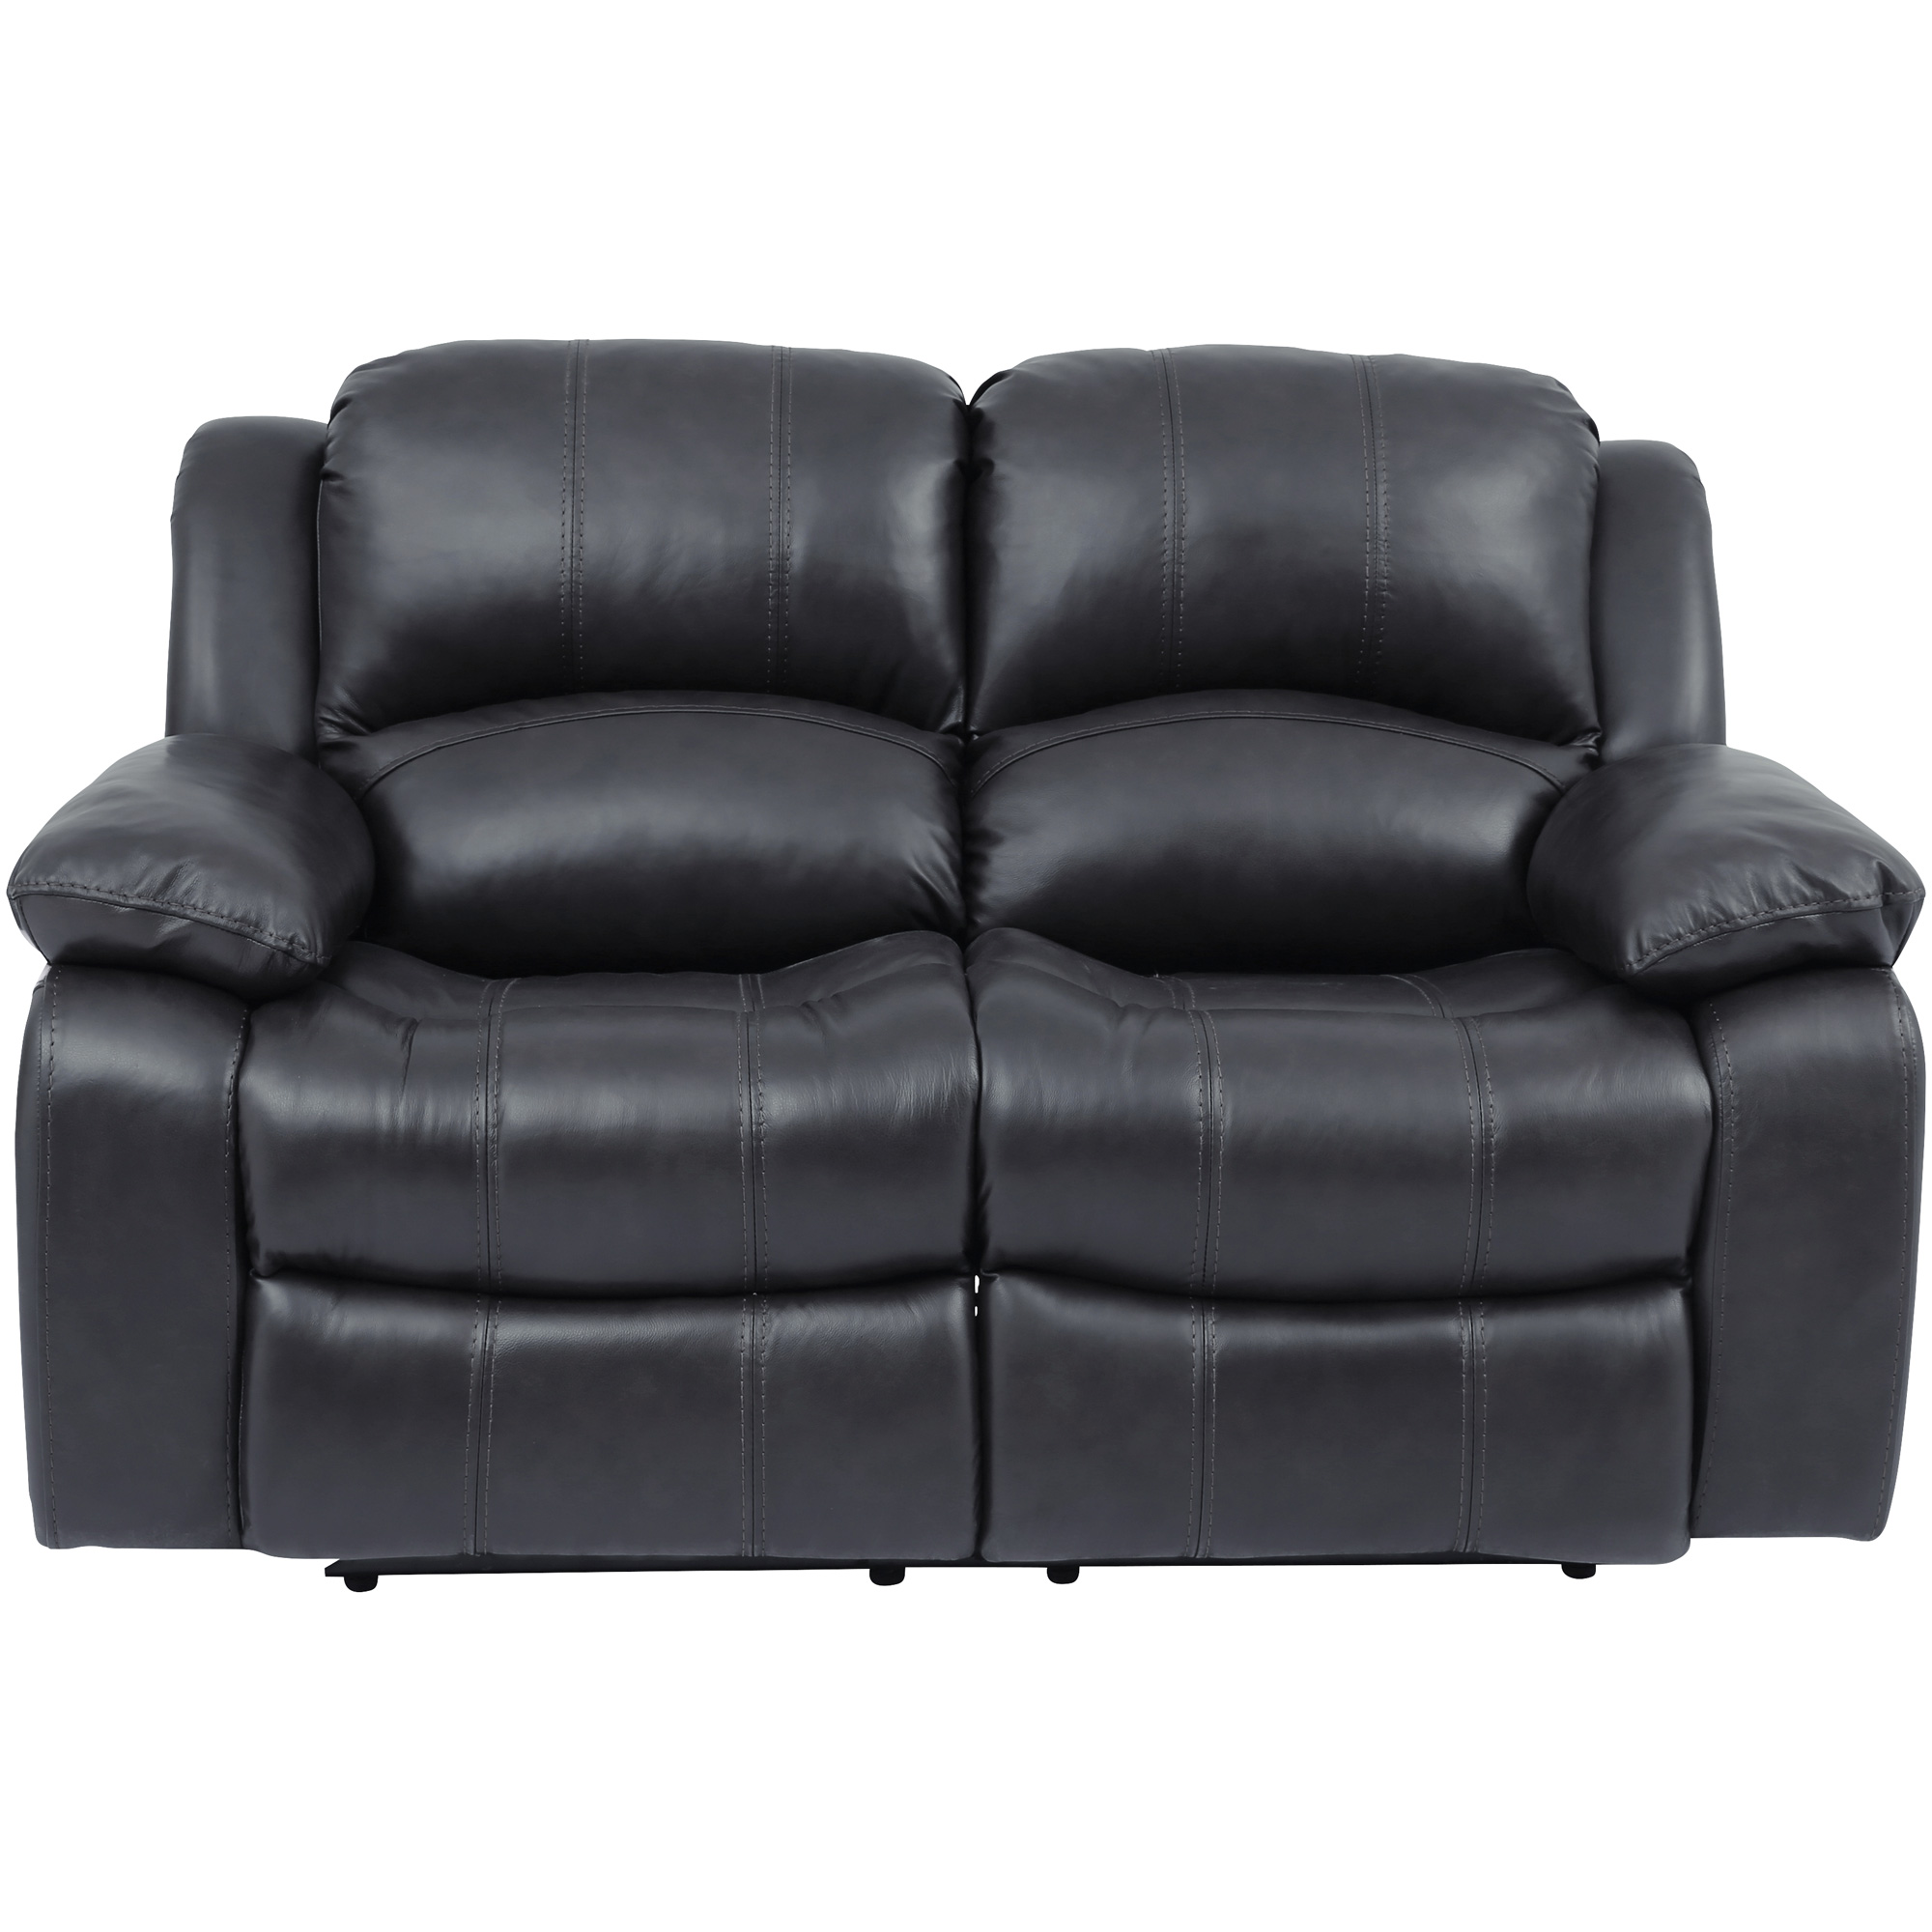 Wah Cheers | Ender Gray Leather Power+ Reclining Loveseat Sofa